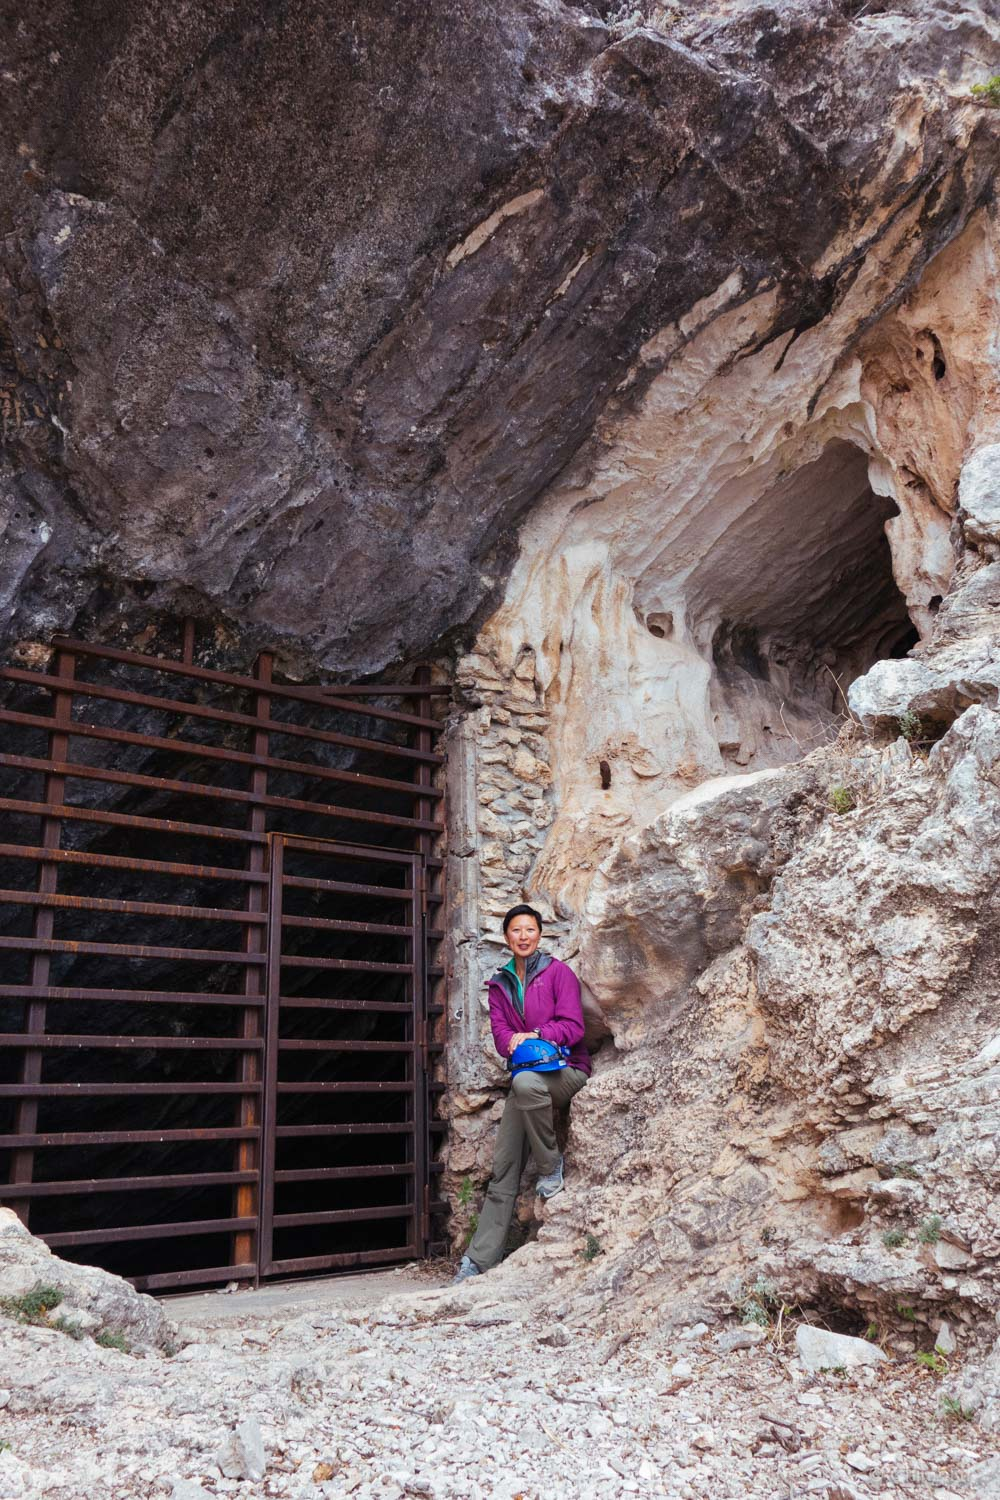 Slaughter Canyon Cave entrance.